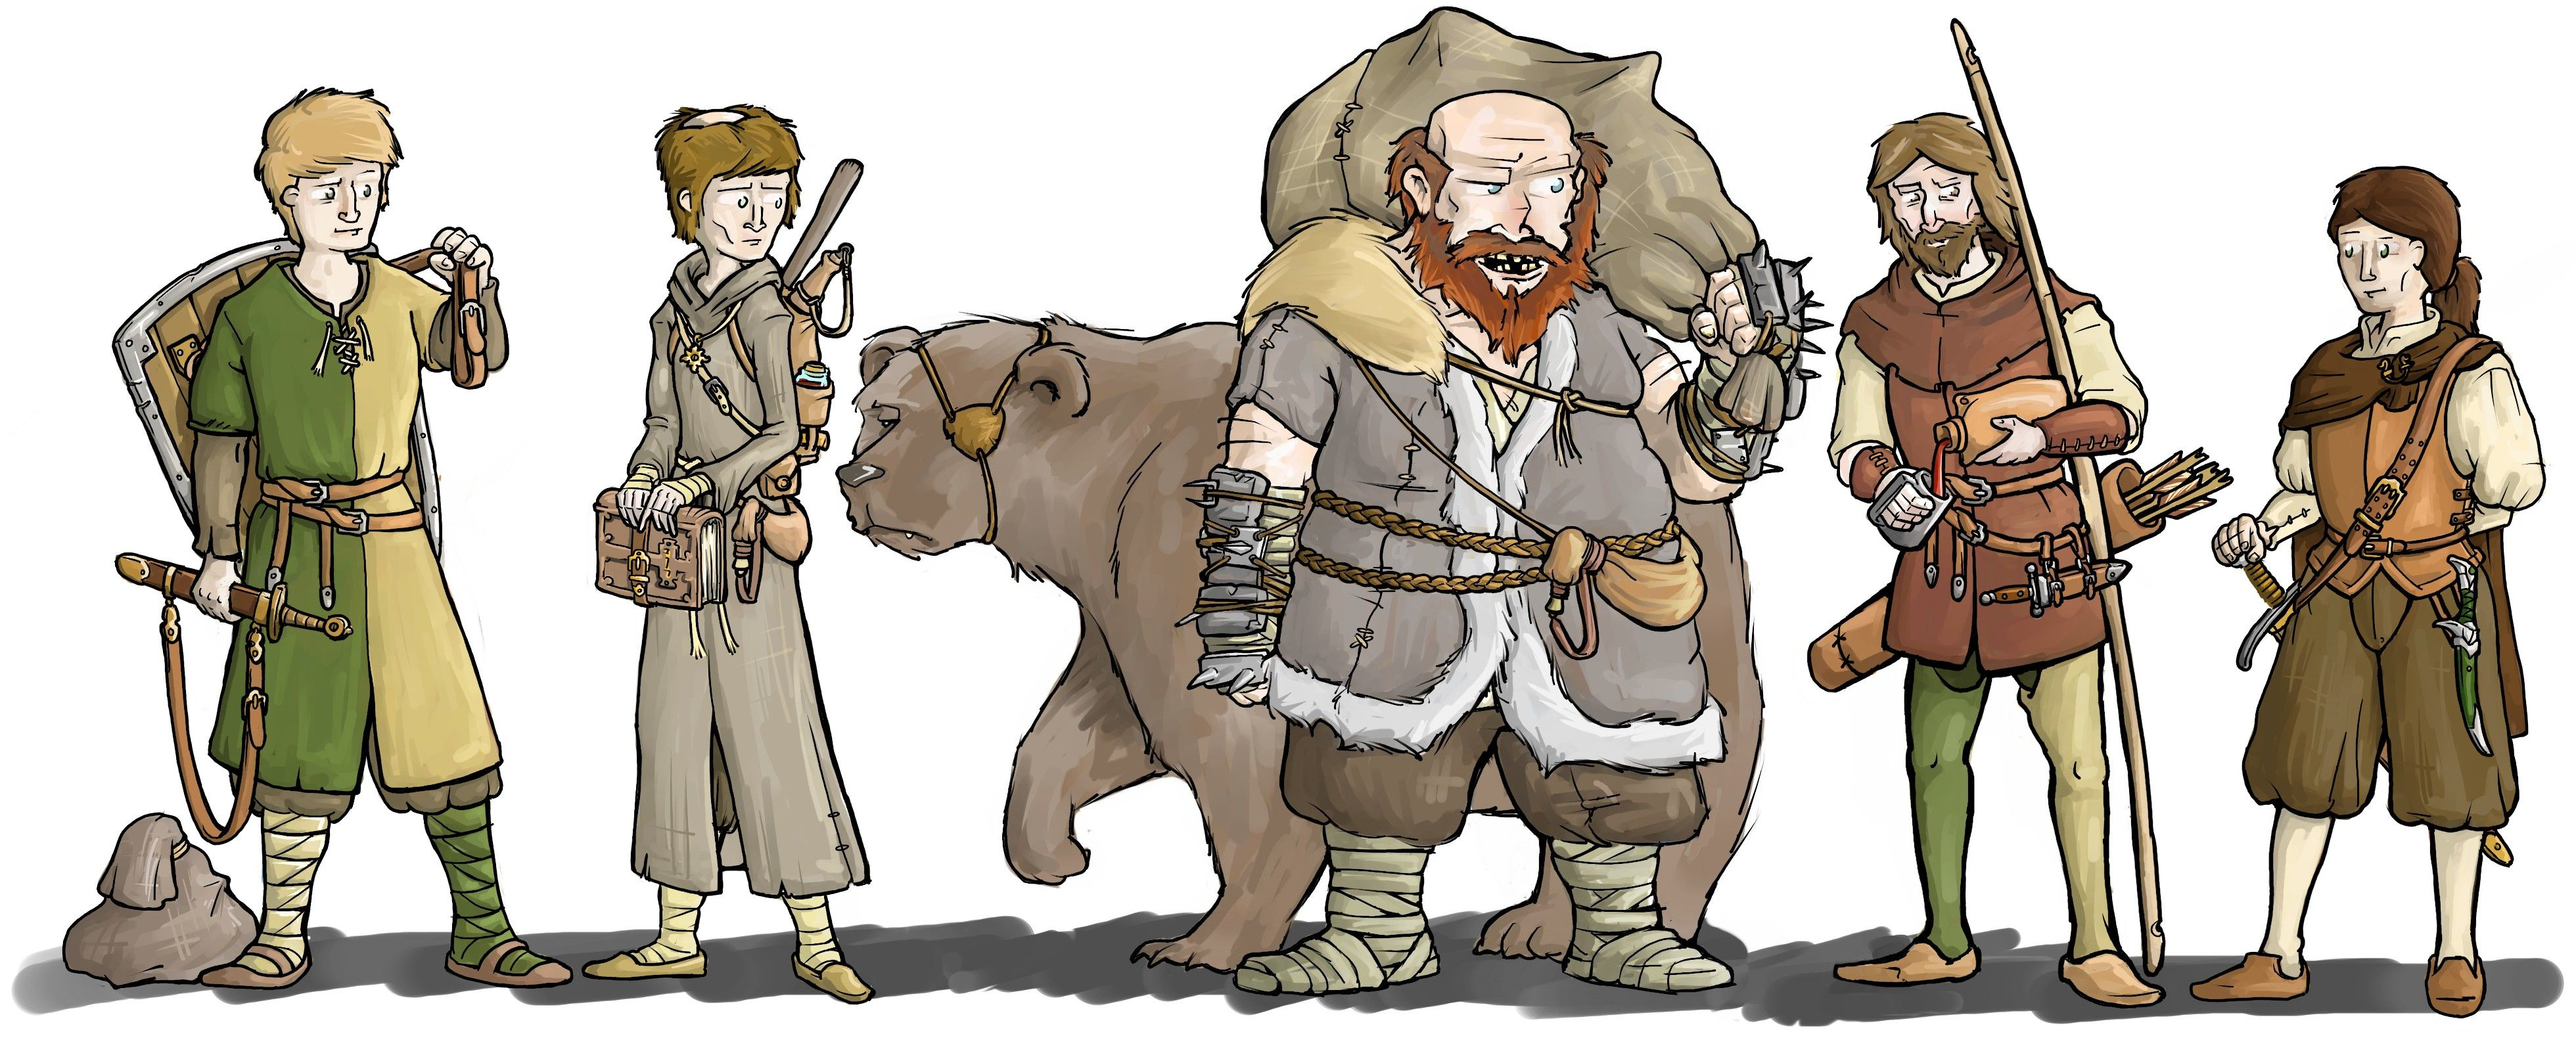 Adventuring party; fighter, mage/cleric, woodsman (with bear), archer and duelist. Made for a  http://stage-rpg.com/ campaign.